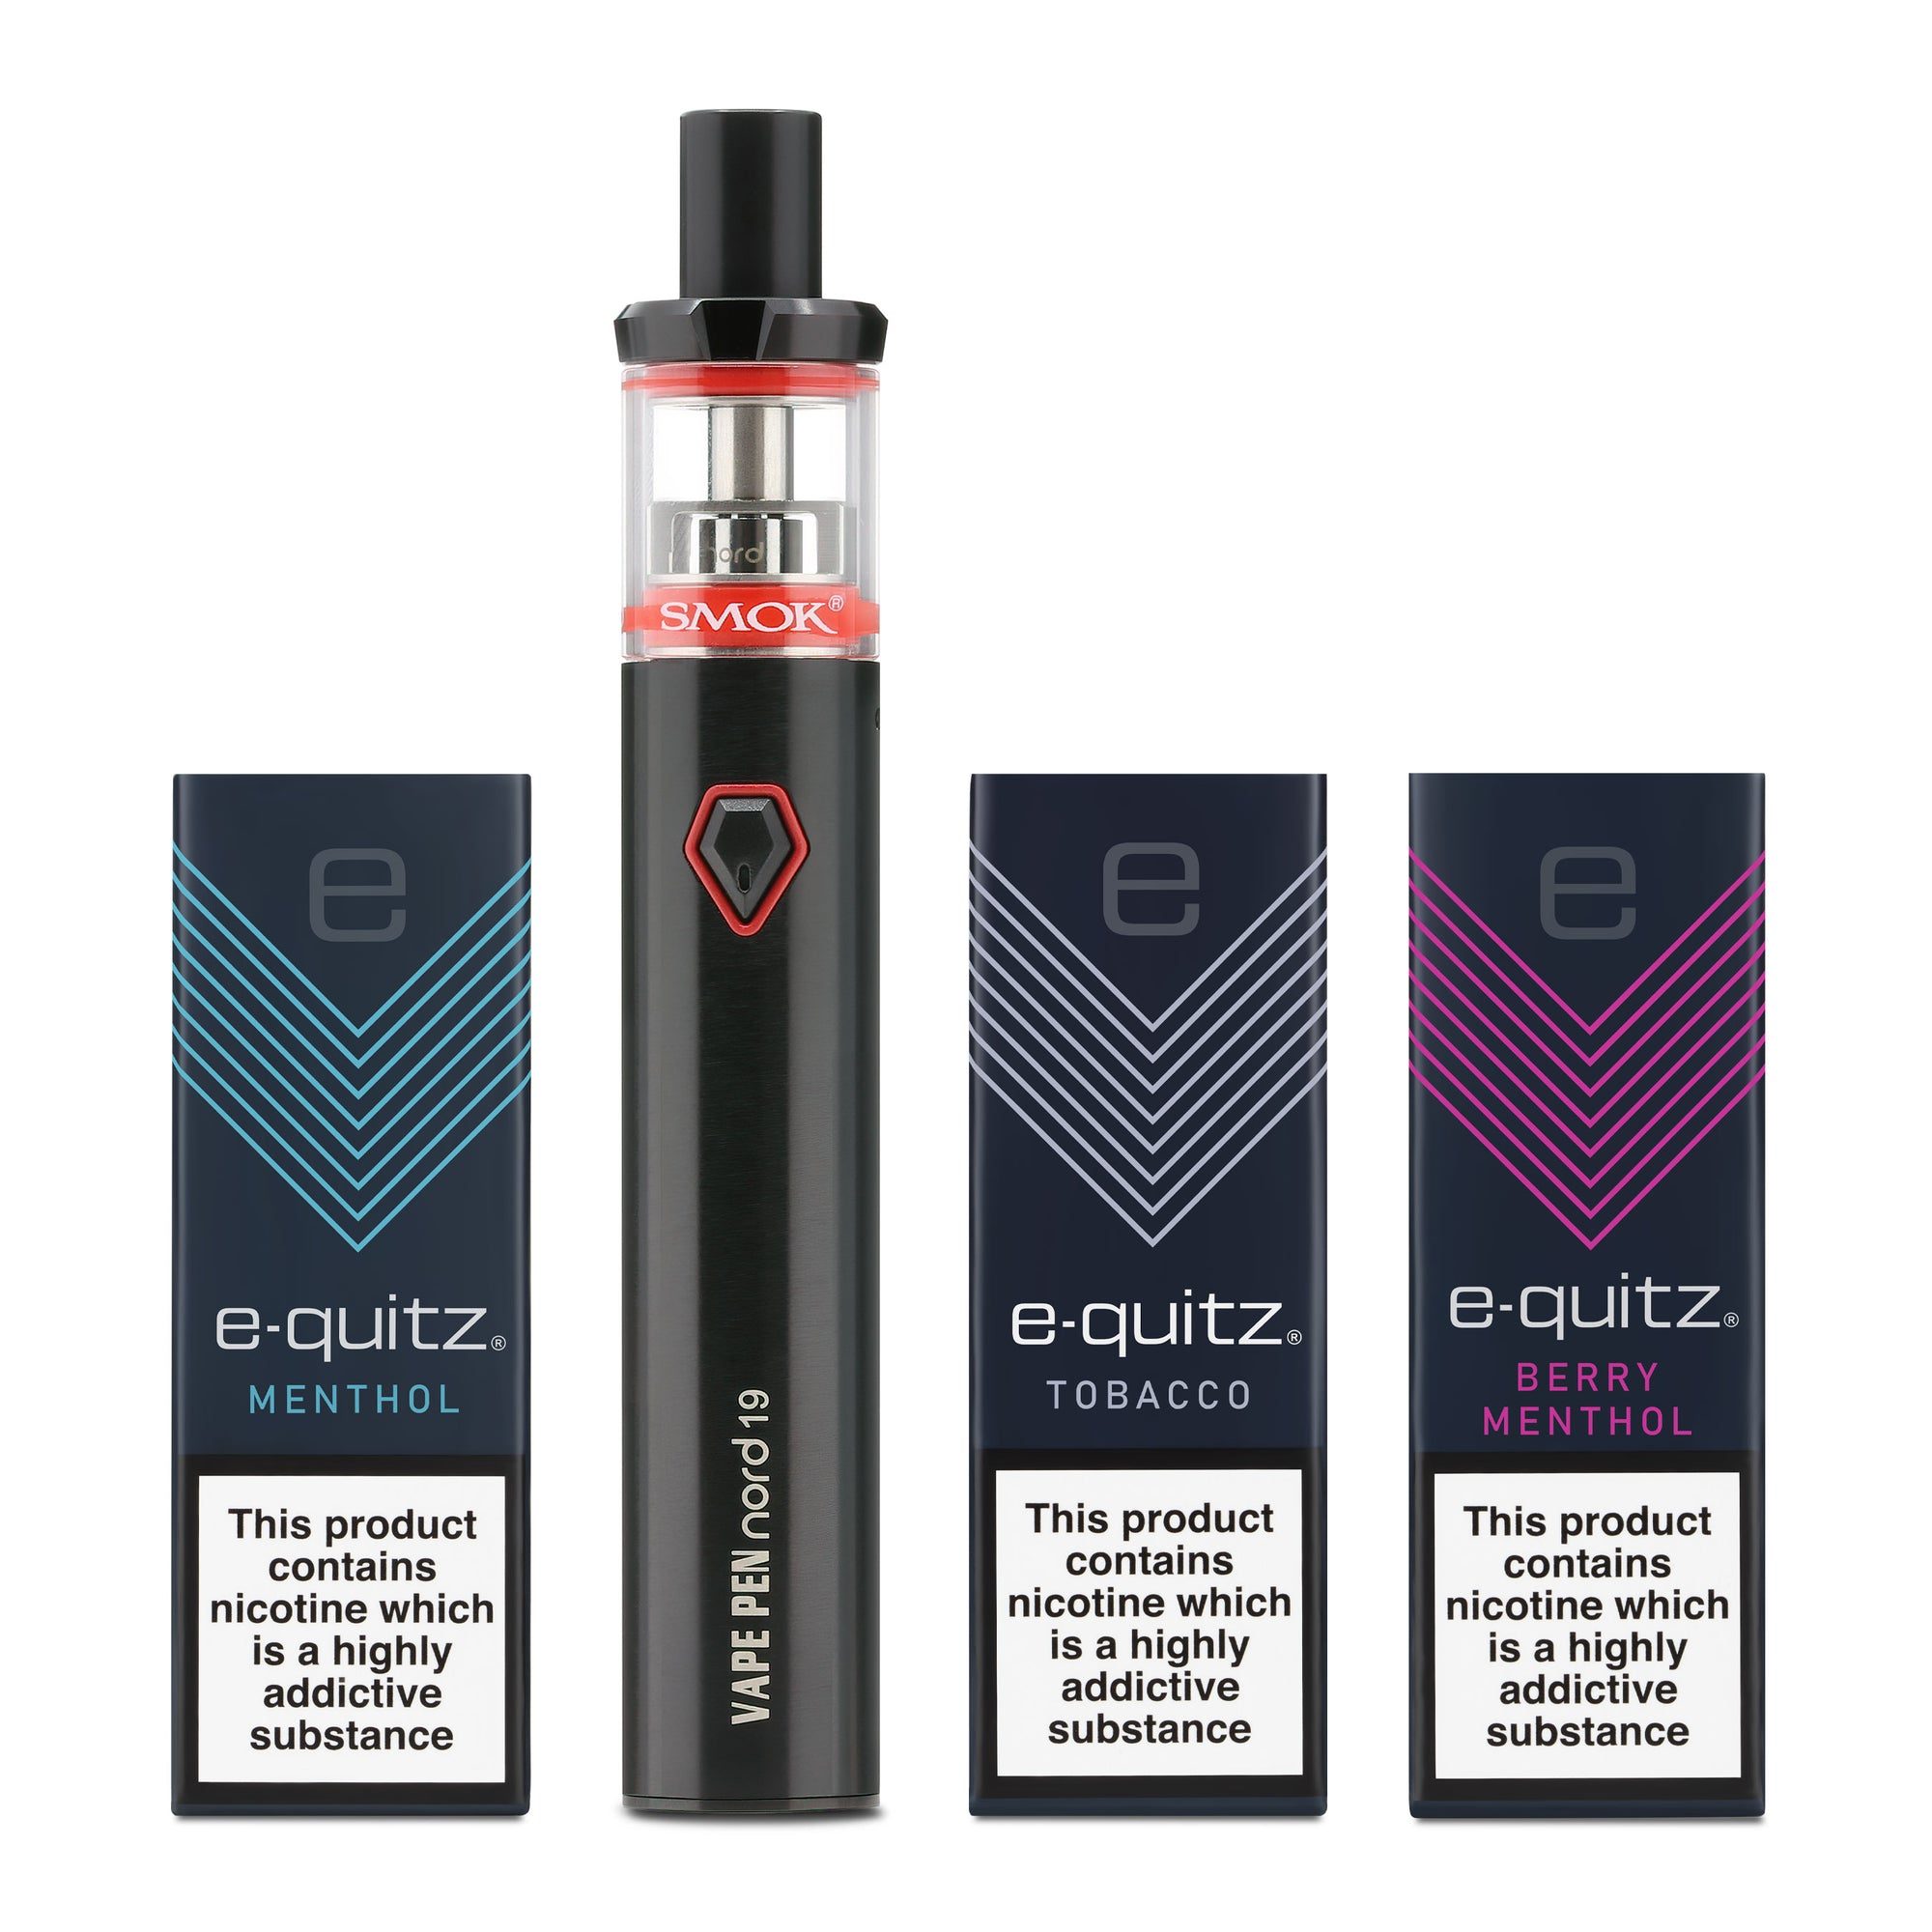 3 free e-liquid and smok vape pen in black